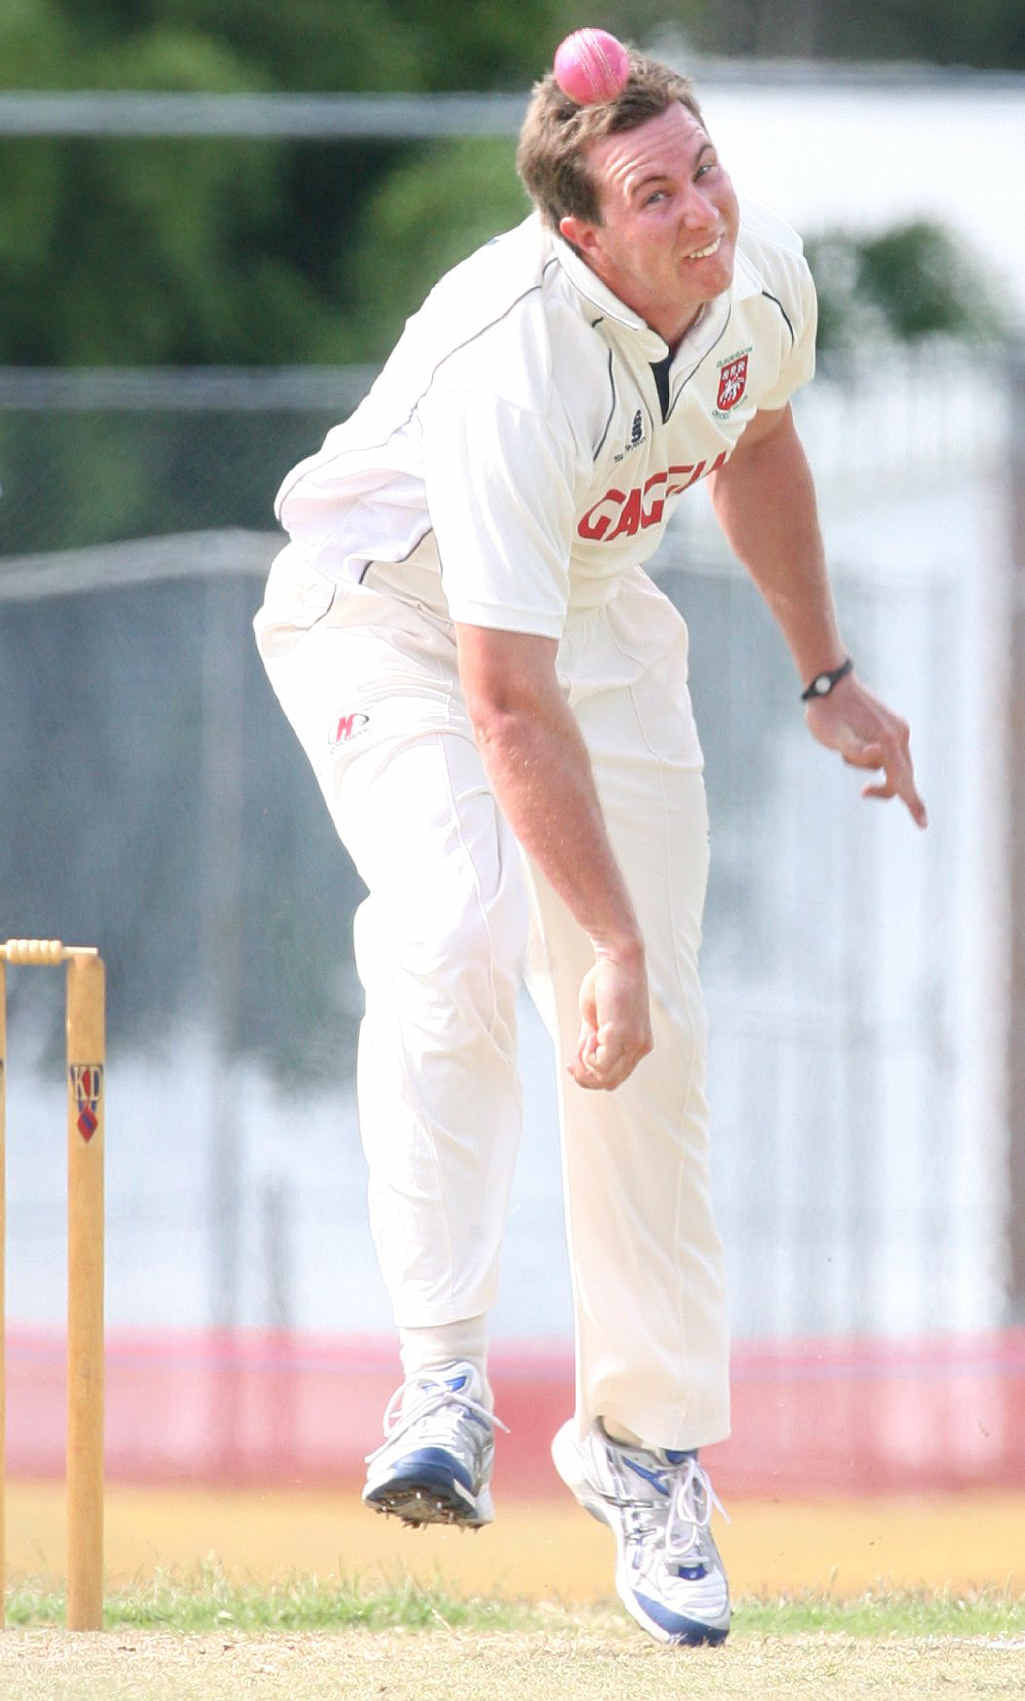 Laidley bowler Ben Gibson poses an early threat to Swifts in the first round of fixtures.